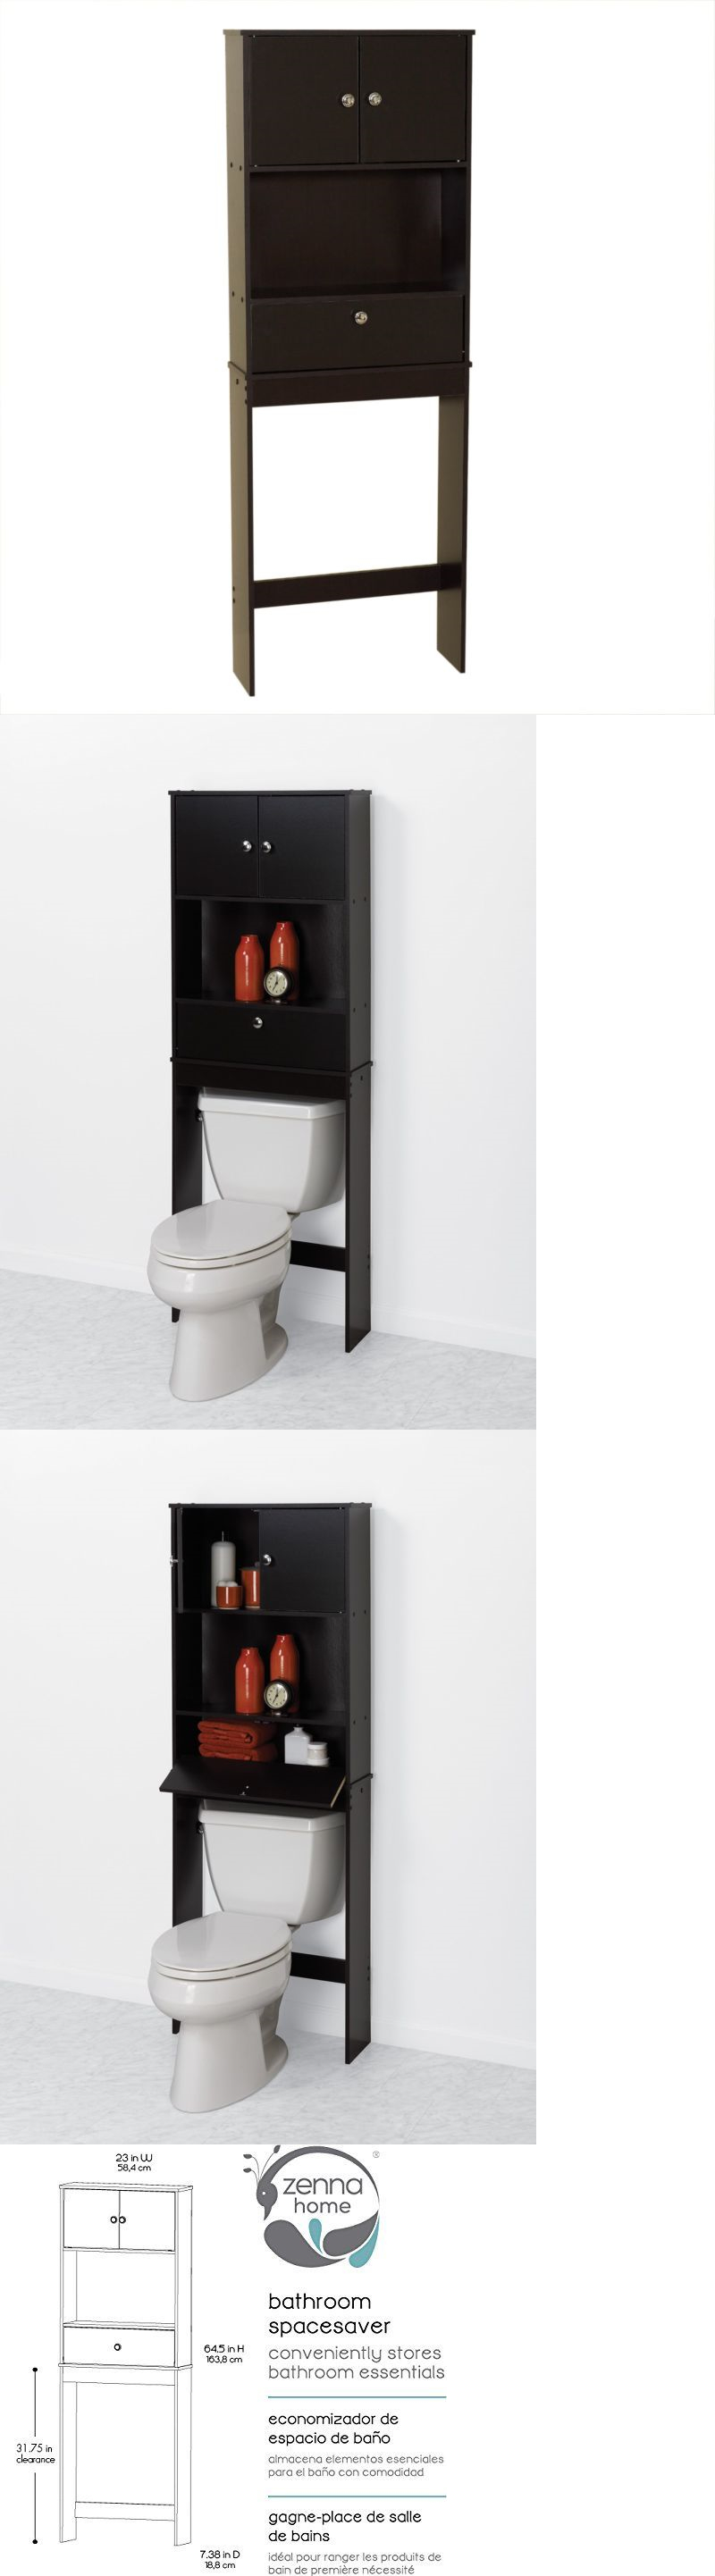 Bath Caddies and Storage 54075: Bathroom Spacesaver Drop Door Over ...